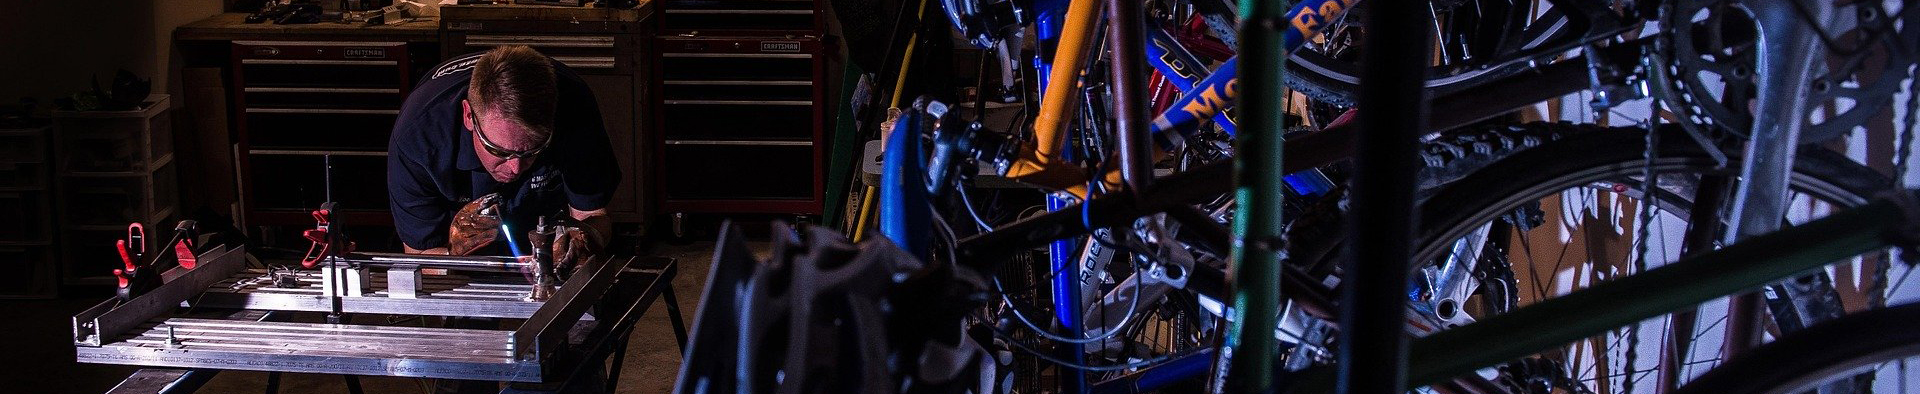 The perfect online schedule system to manage your bicycle workshop